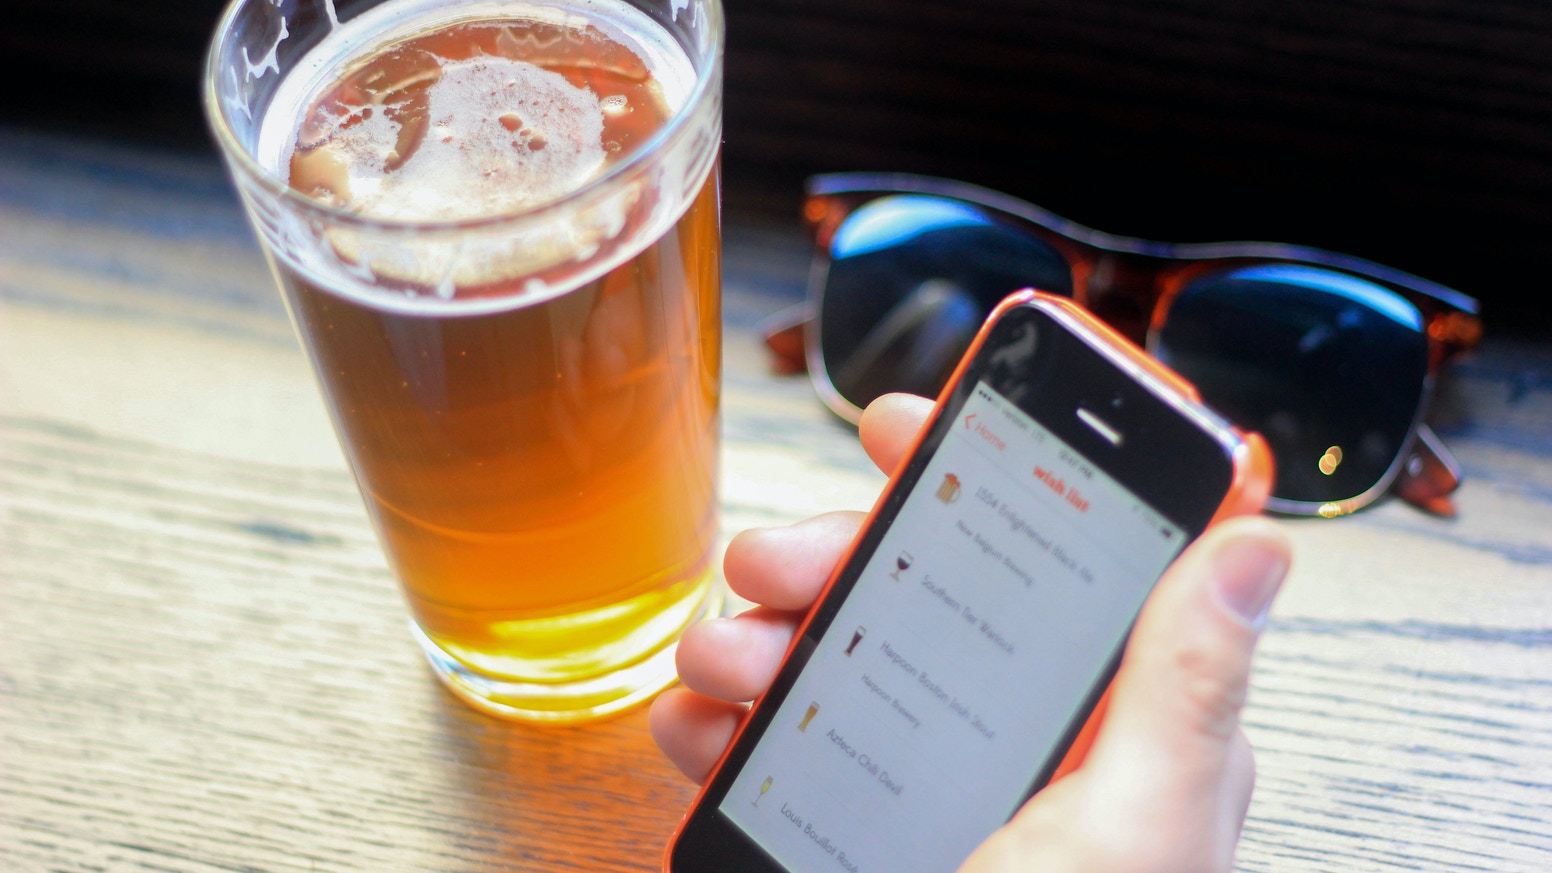 Swig is a social drink journal that learns your tastes and helps you discover new beers, wines and spirits. Let's drink explore.